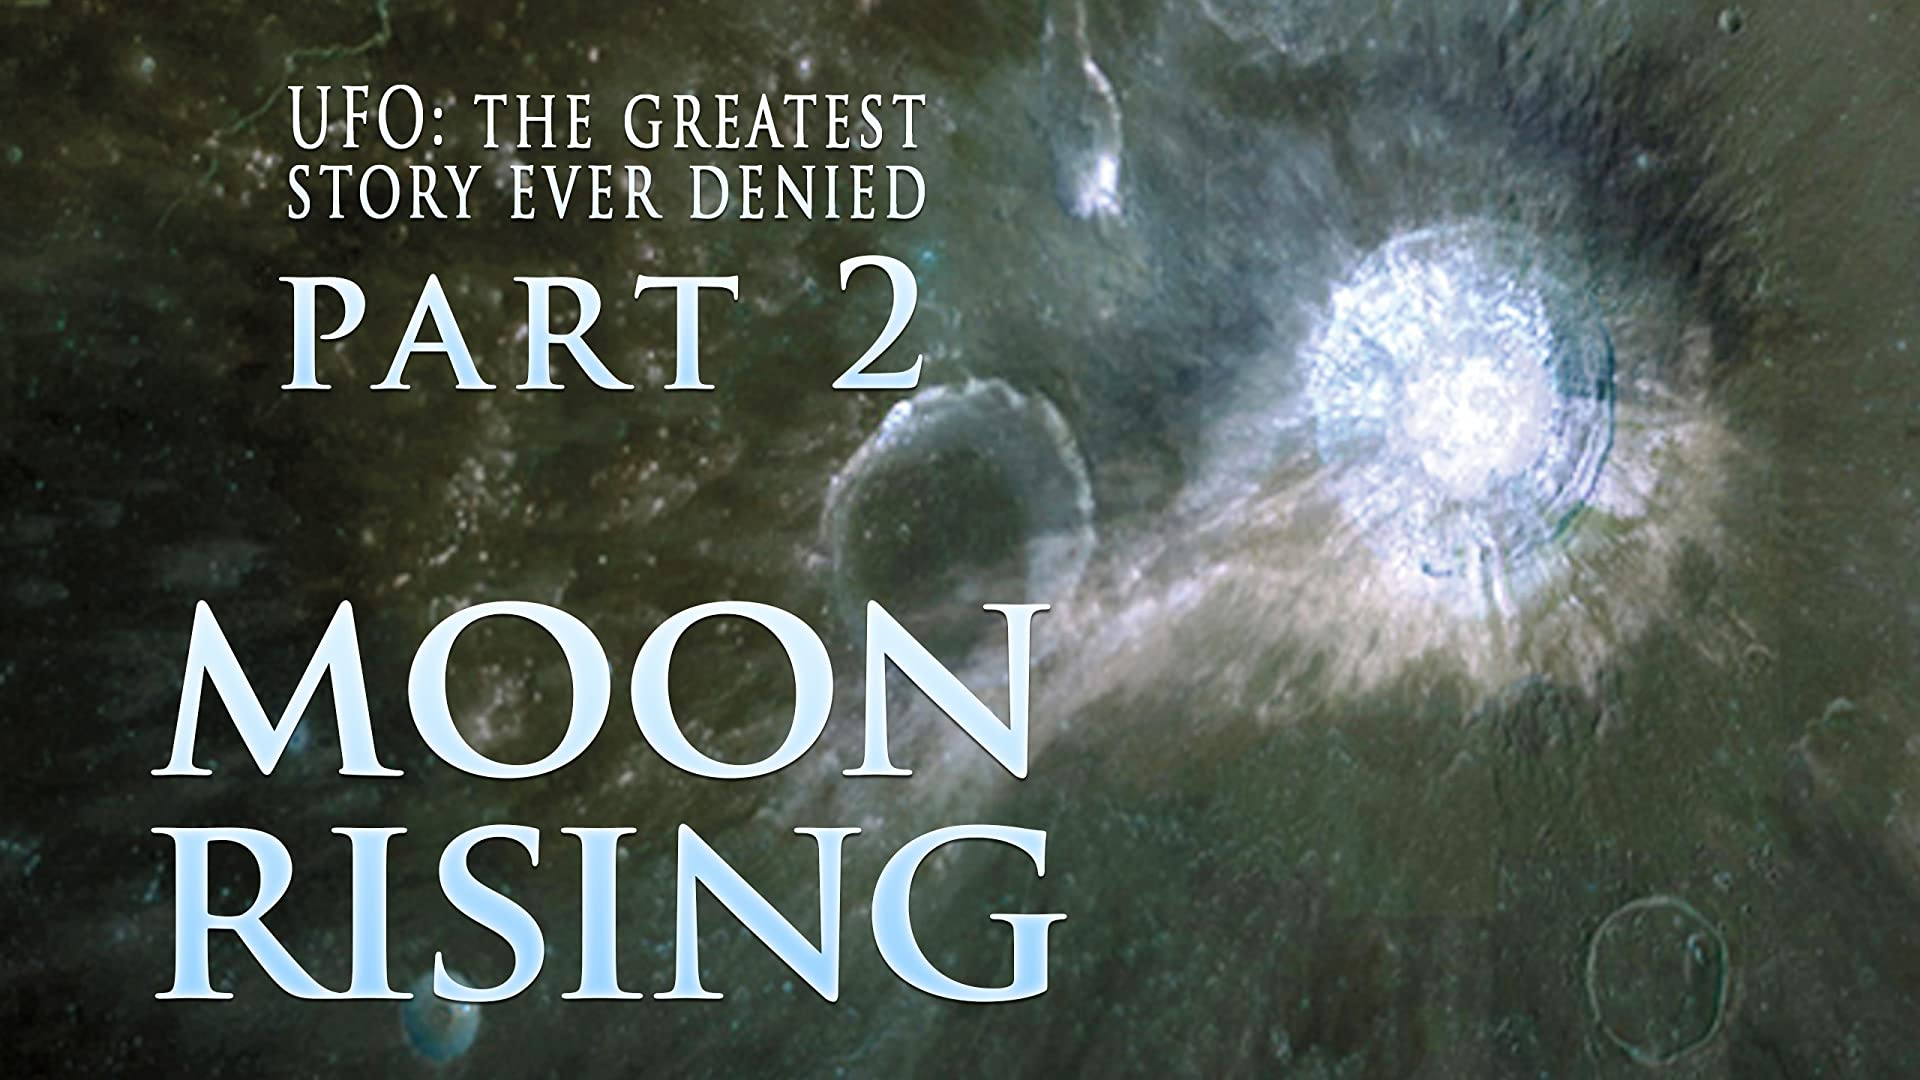 UFO: The Greatest Story Ever Denied - Part 2: Moon Rising